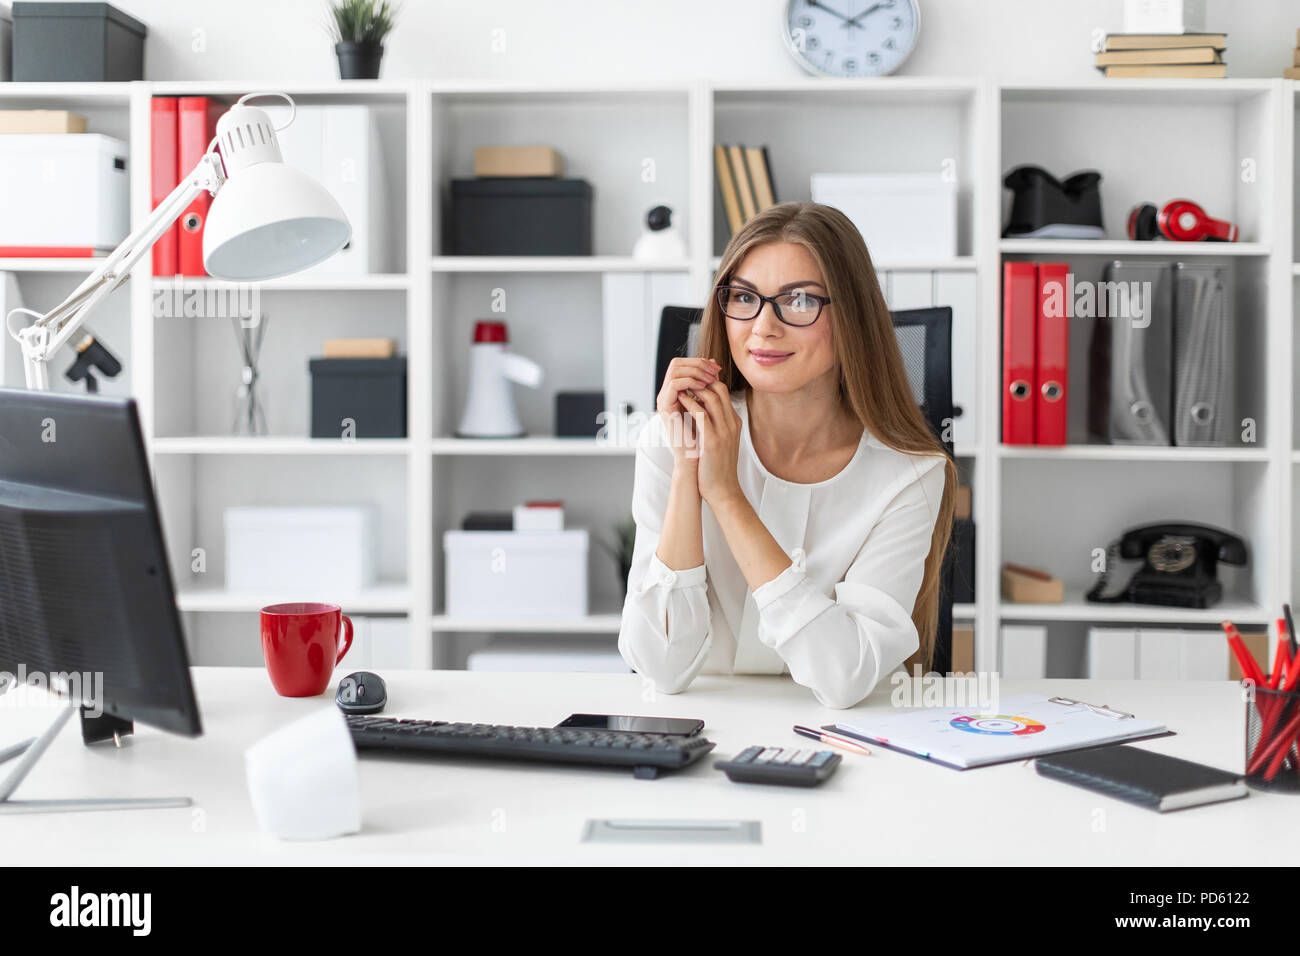 A young girl is sitting at the computer desk in the office. - Stock Image